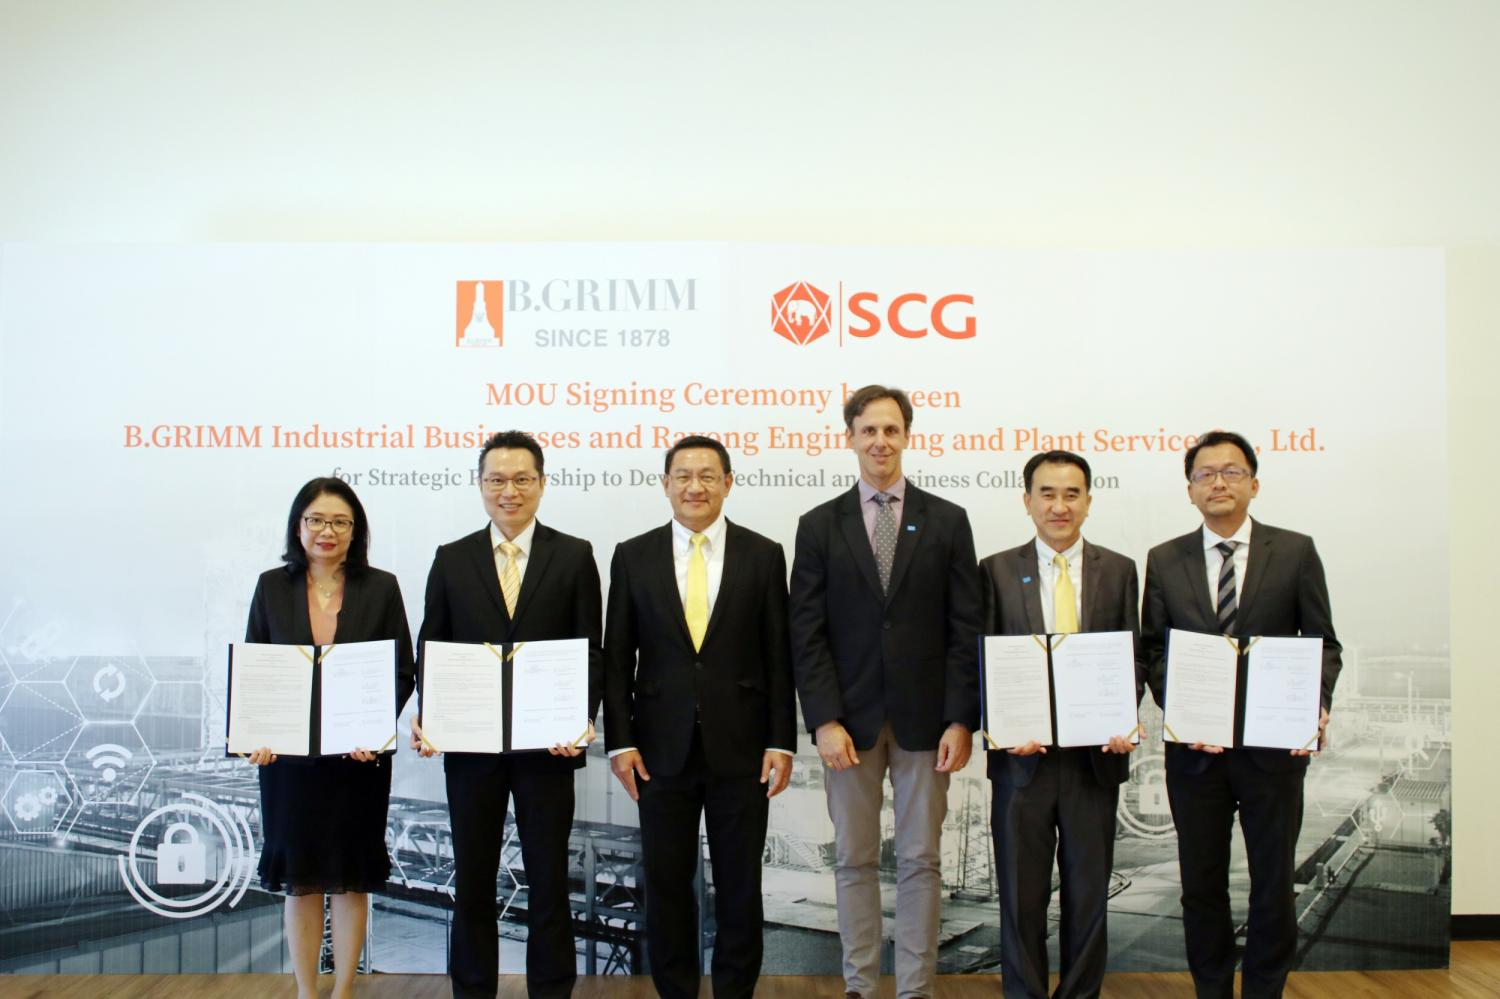 Mr Goetschmann, third right, and Mr Chokchai, second right, mark the B.Grimm-SCG cooperation signing ceremony. The two sides plan to offer cutting-edge industrial solutions.